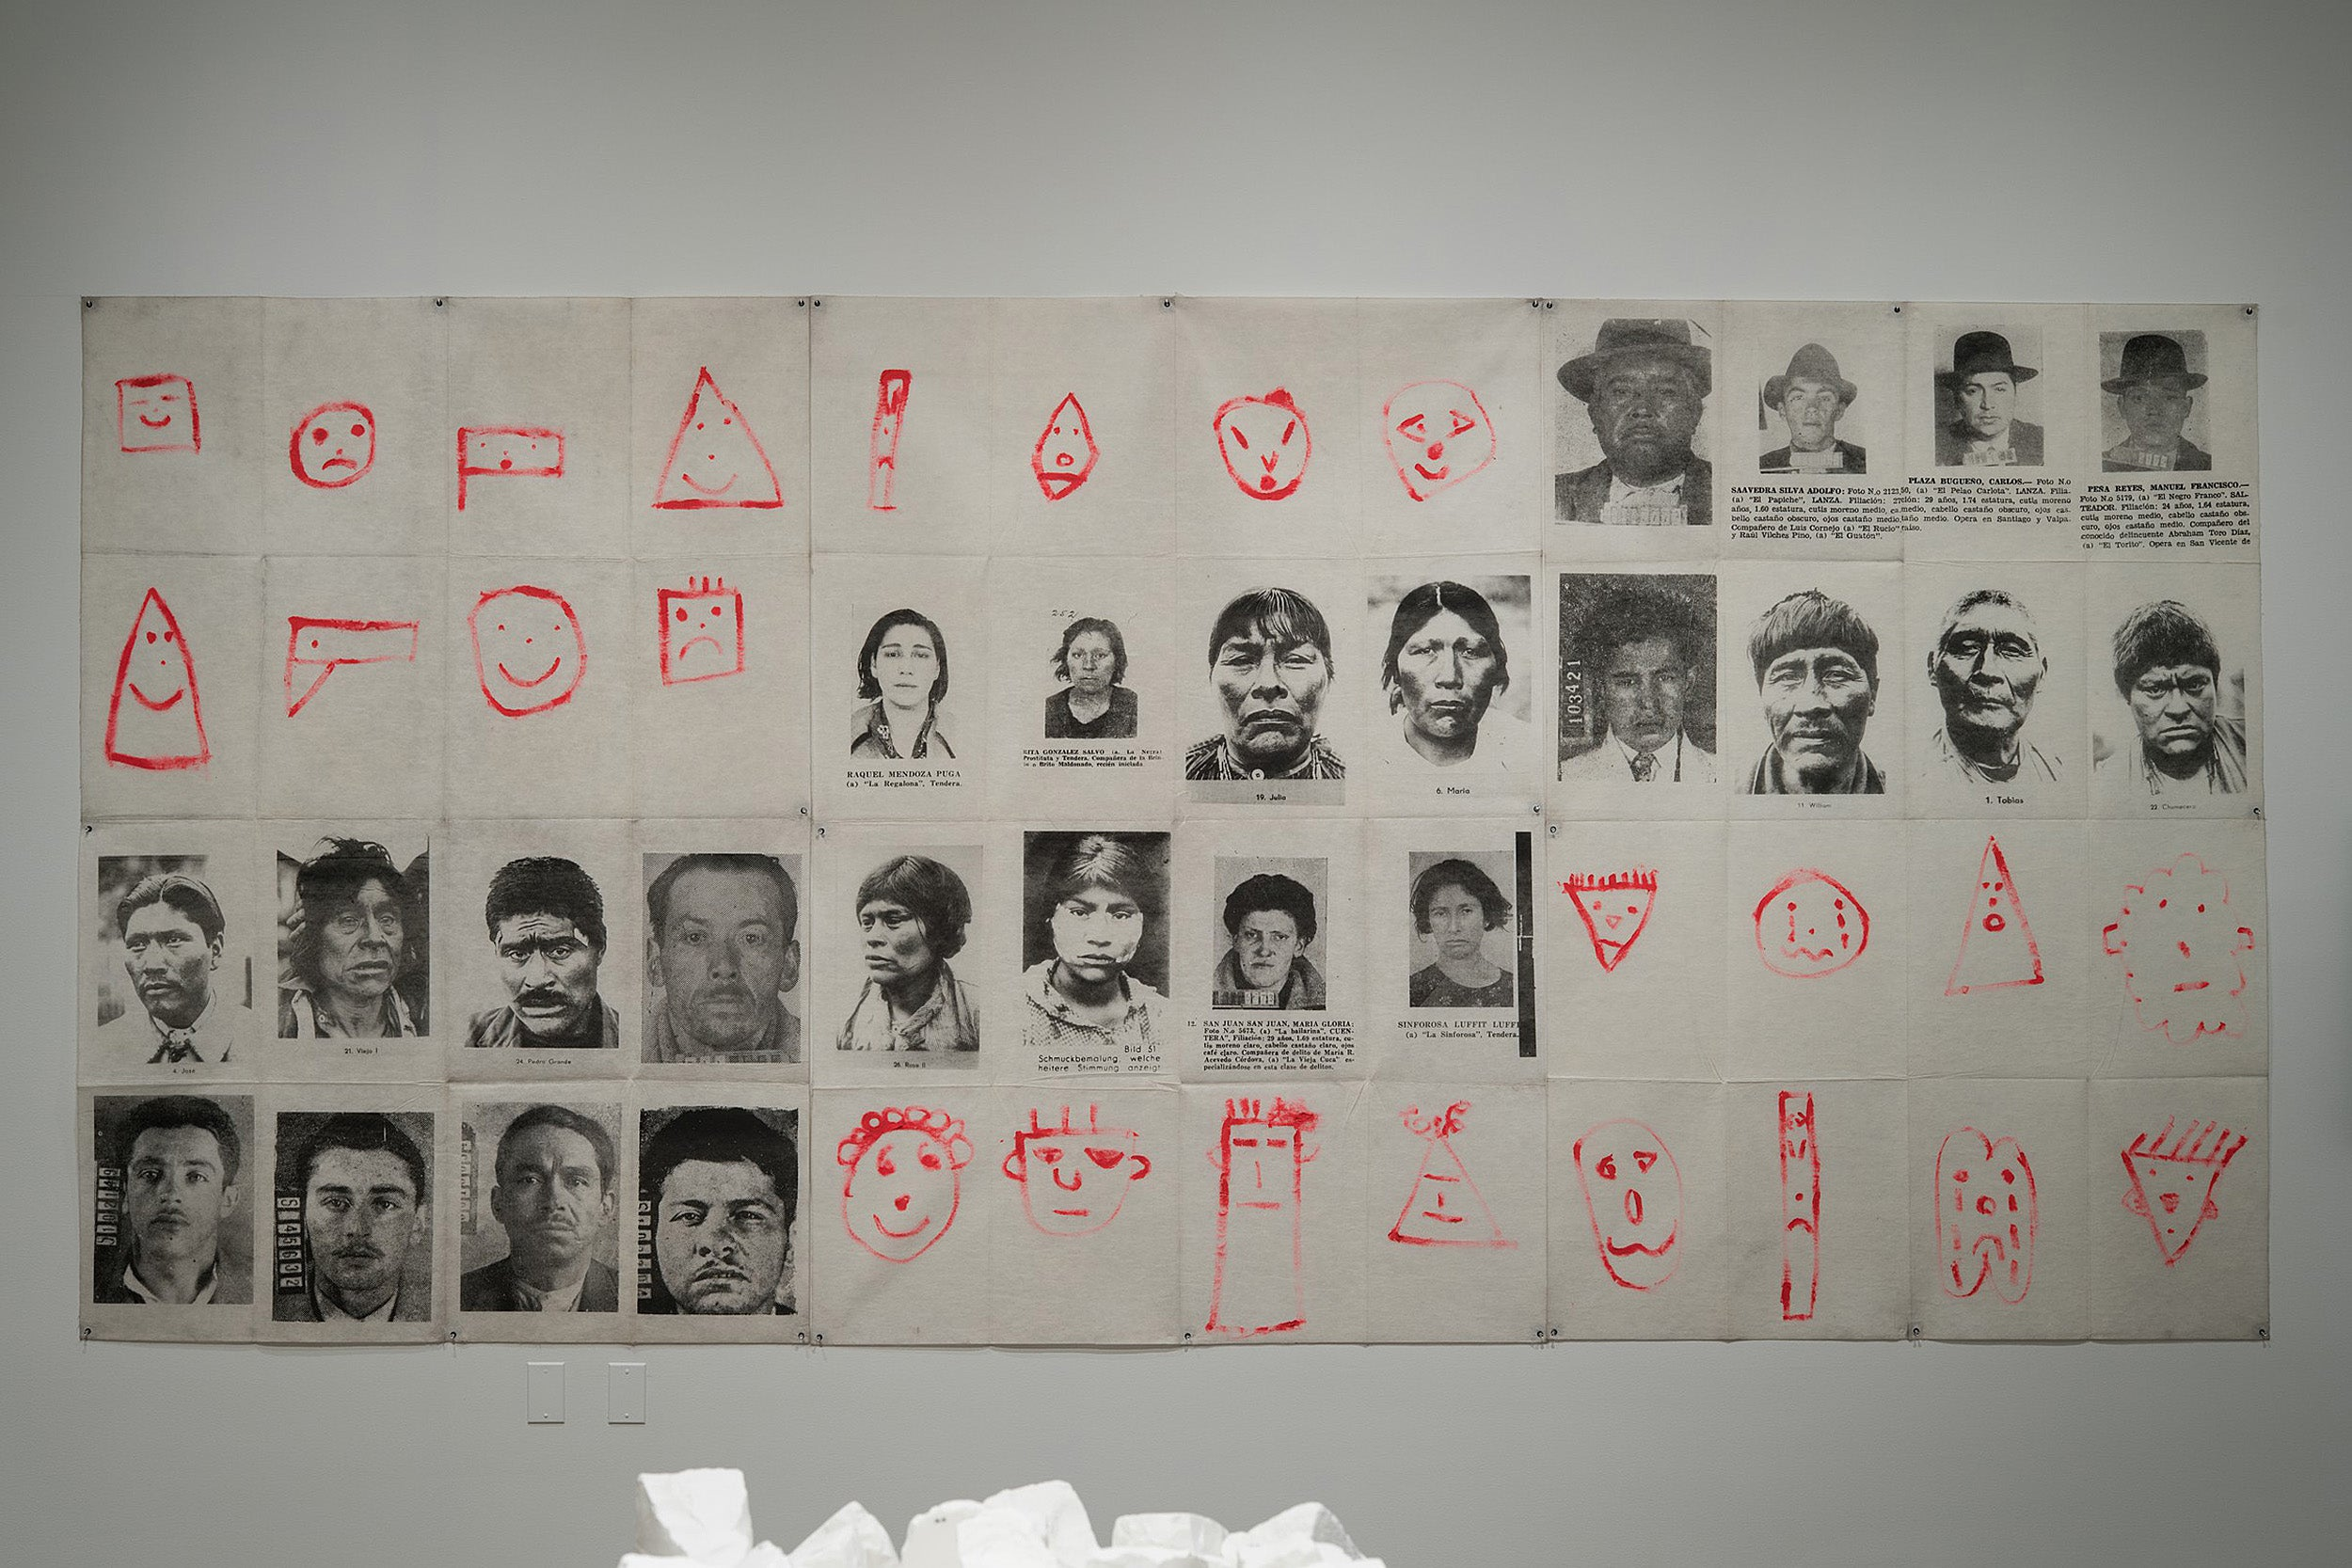 A large mural of photographs and children's drawings.